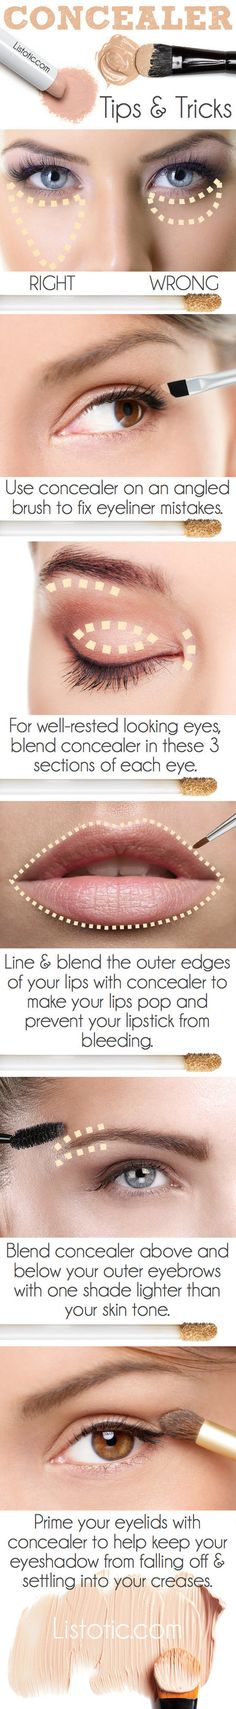 Concealer Tips & Tricks #beautytips